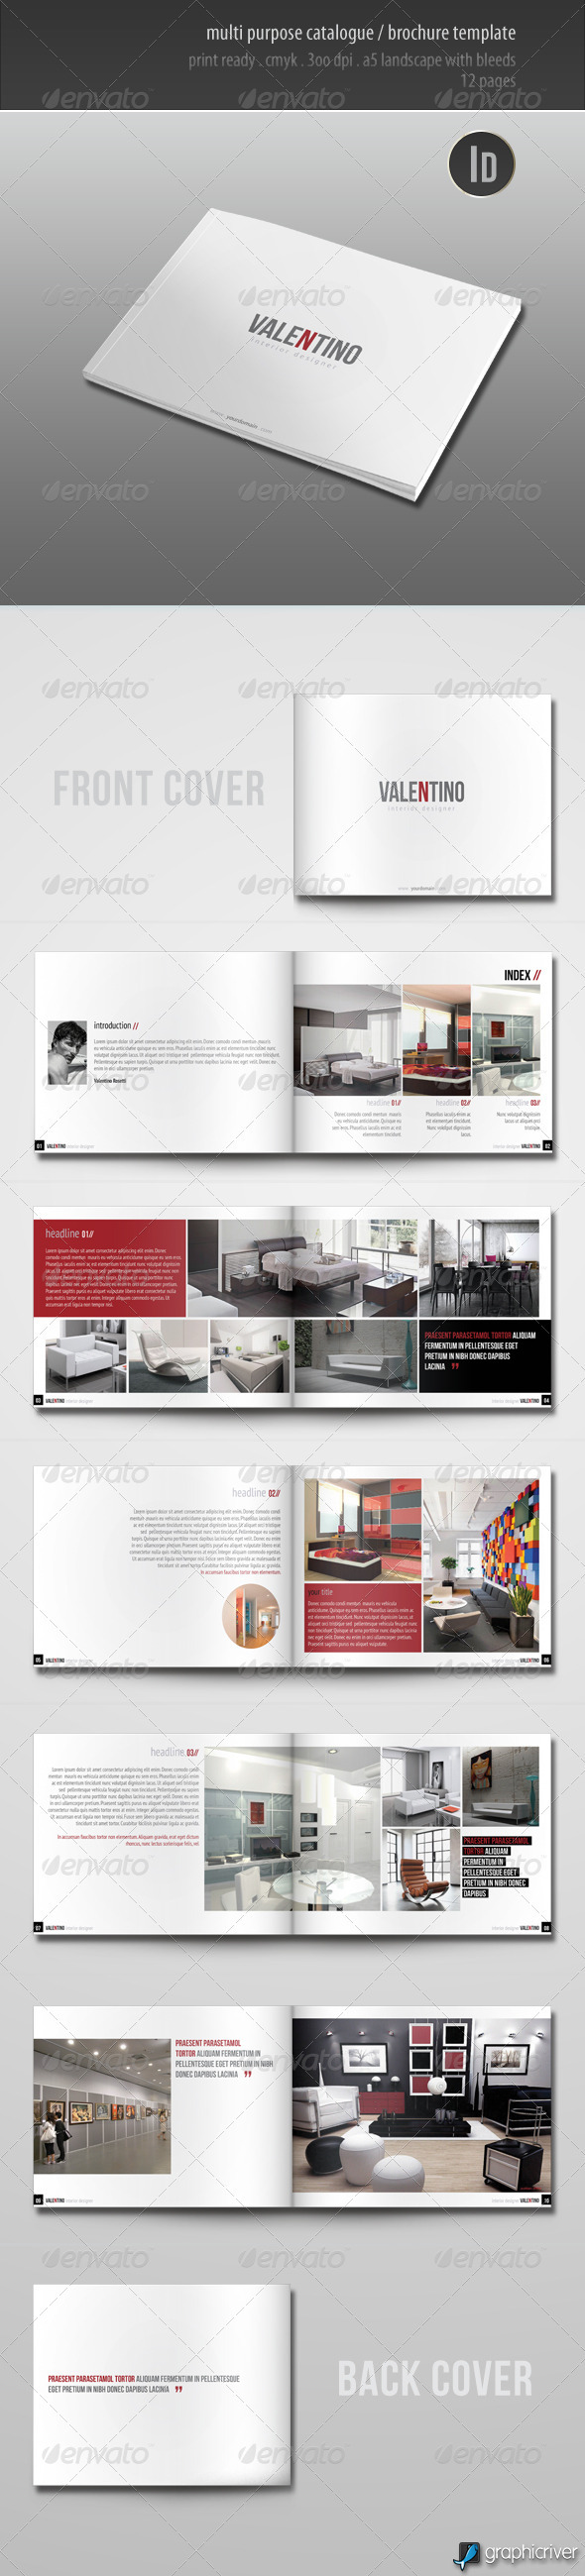 GraphicRiver Multi Purpose Catalogue Brochure Template 2793099